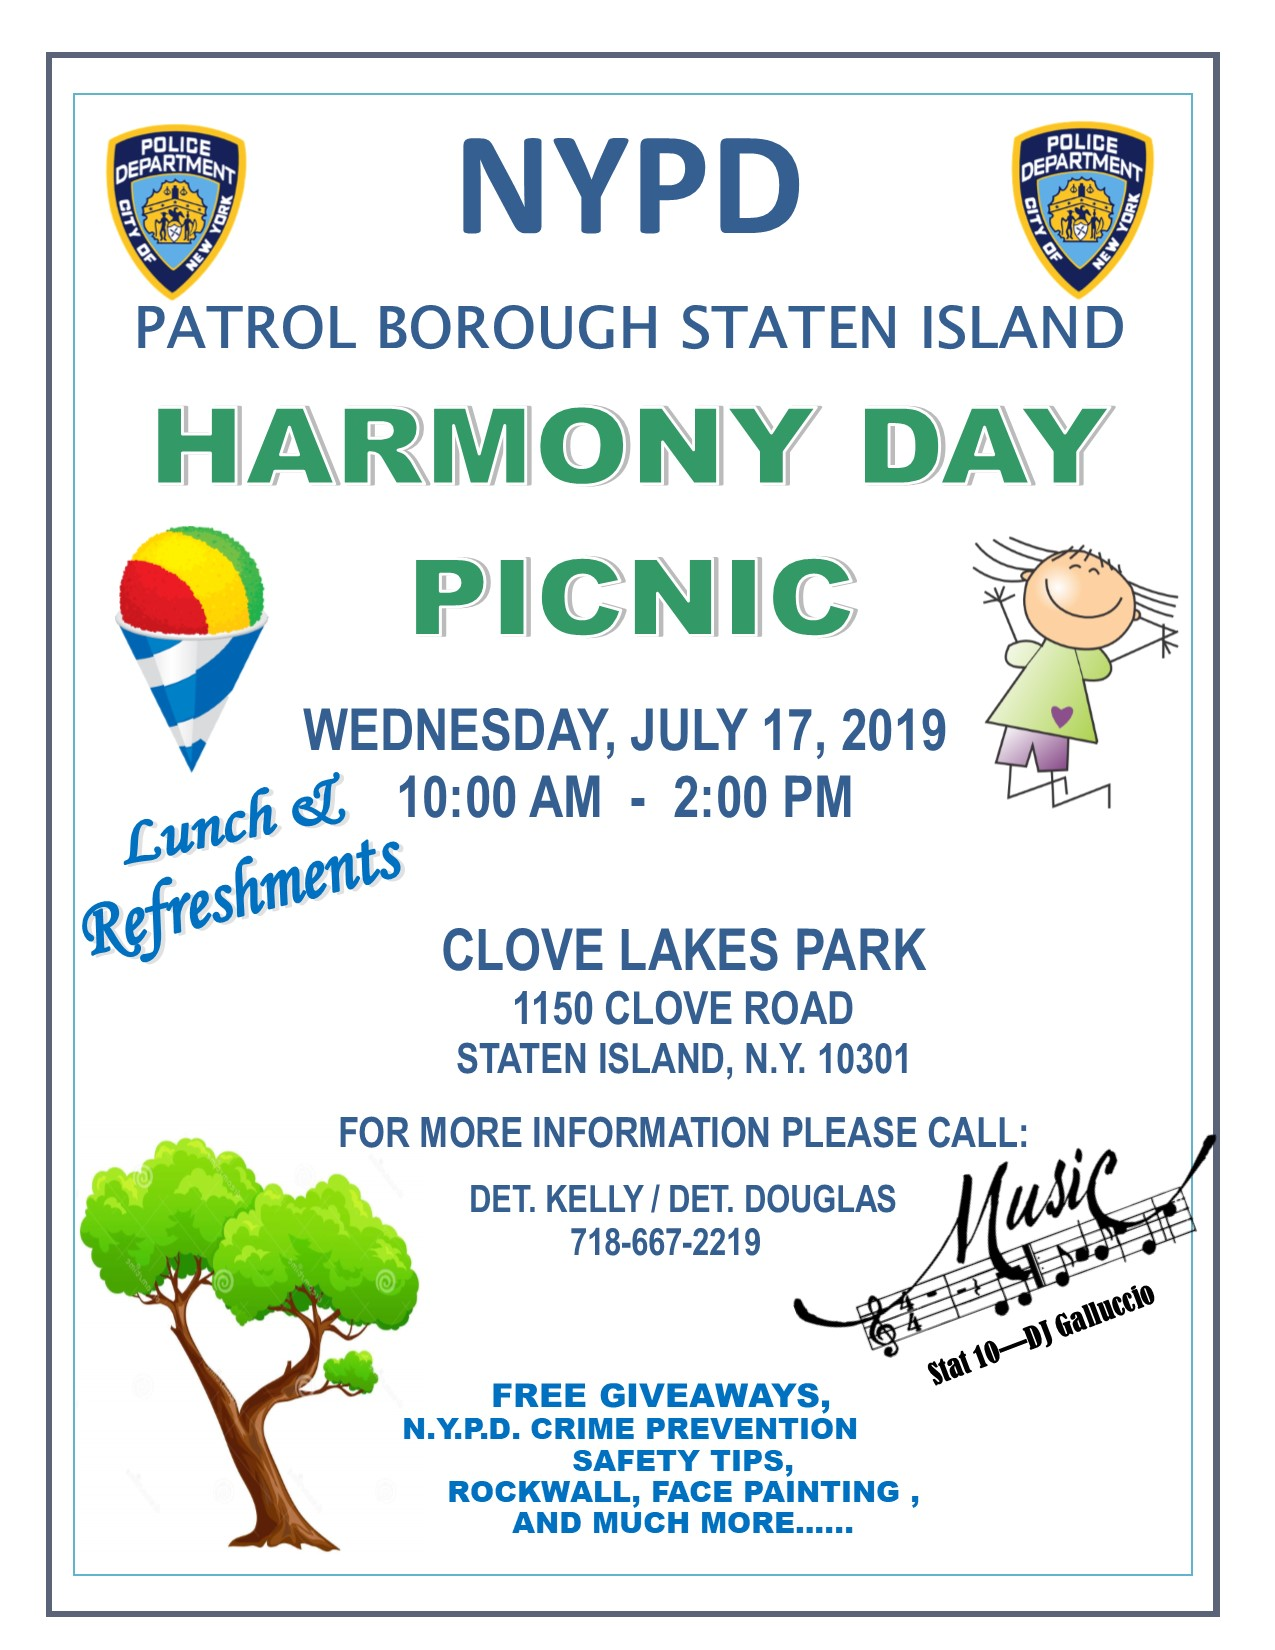 NYPD Harmony Day Picnic at Clove Lakes Park July 17th – Community